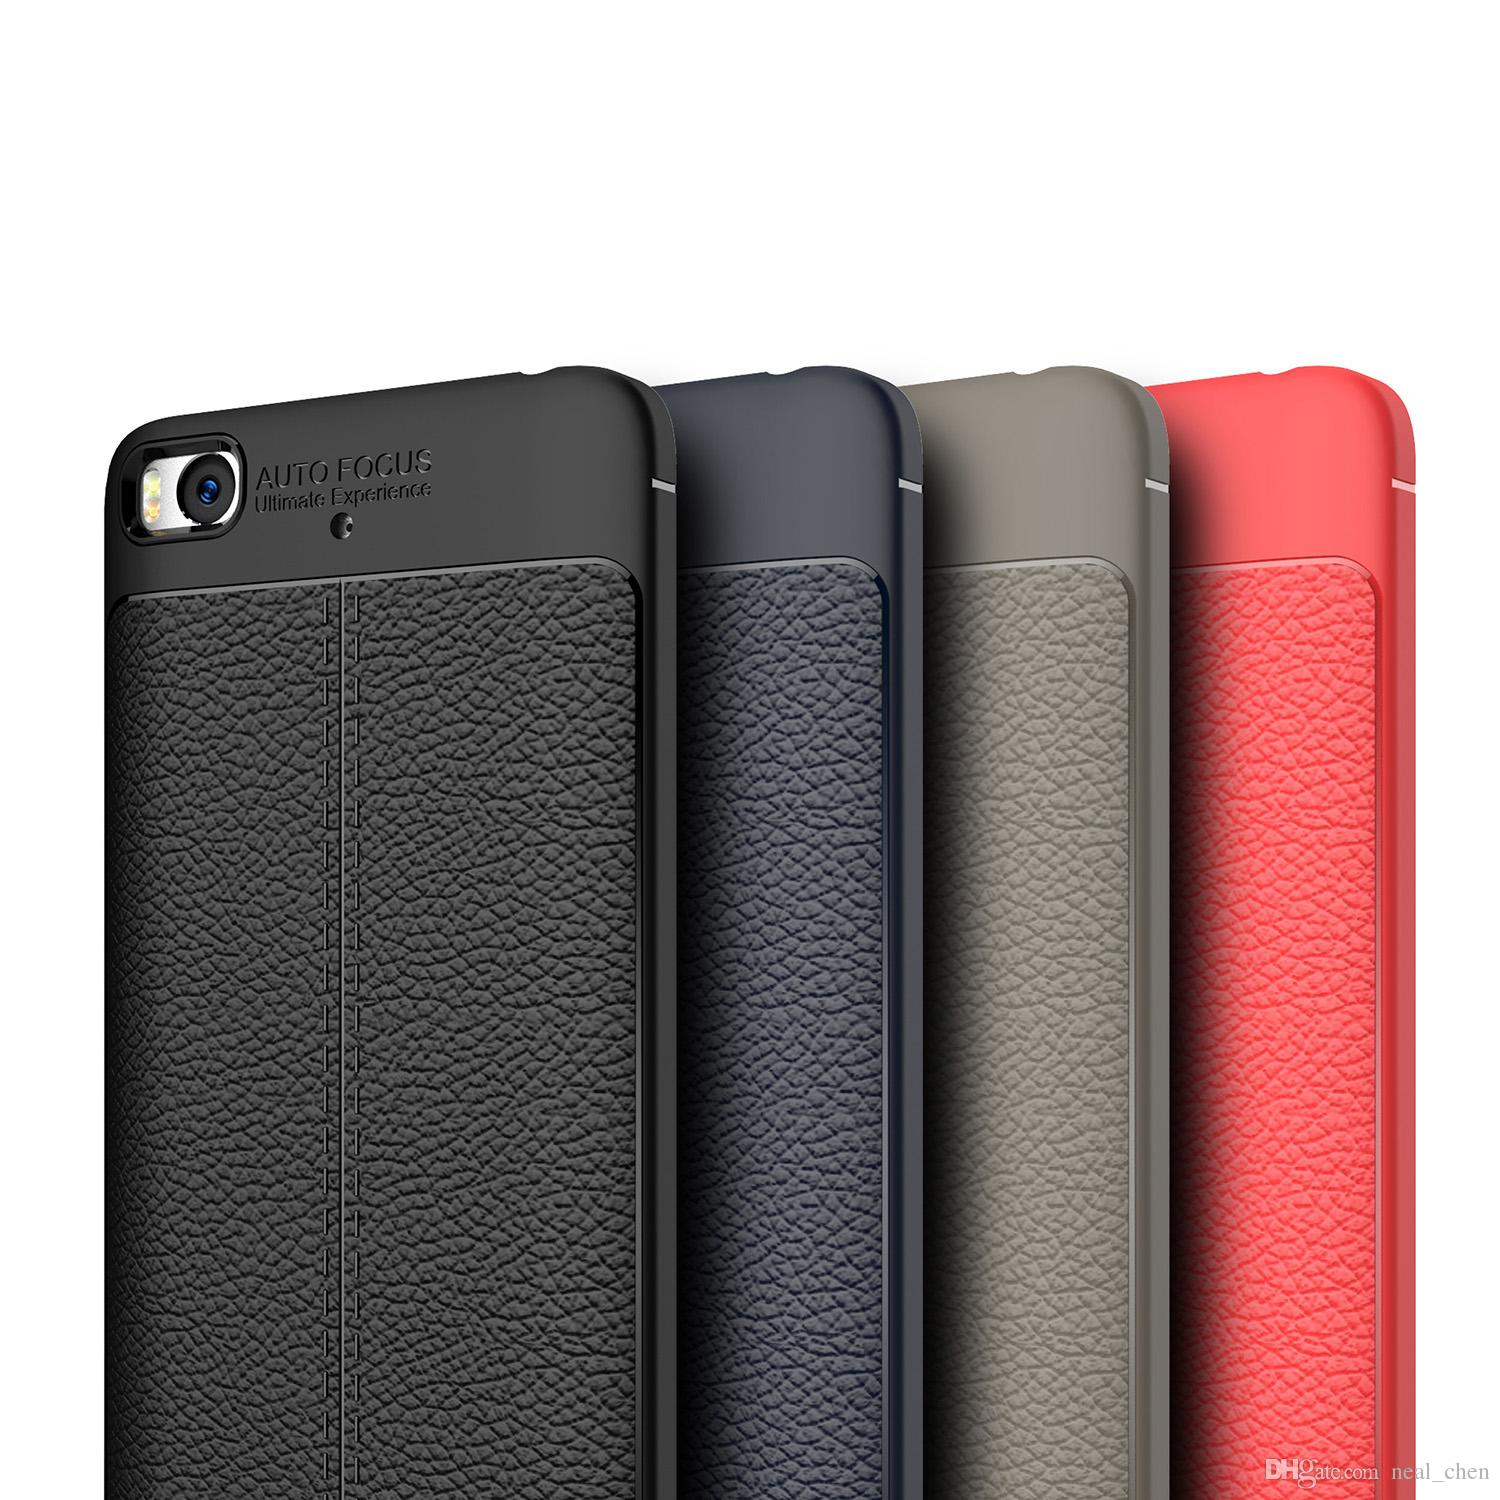 76e70098b837 Luxury Soft TPU Leather Cases Carbon Fiber Coque Cover For Xiaomi Mi 5C 5S  5X A1 Max Mix 2 Note 3 Redmi Max2 Mix2 Online with  2.76 Piece on  Neal chen s ...